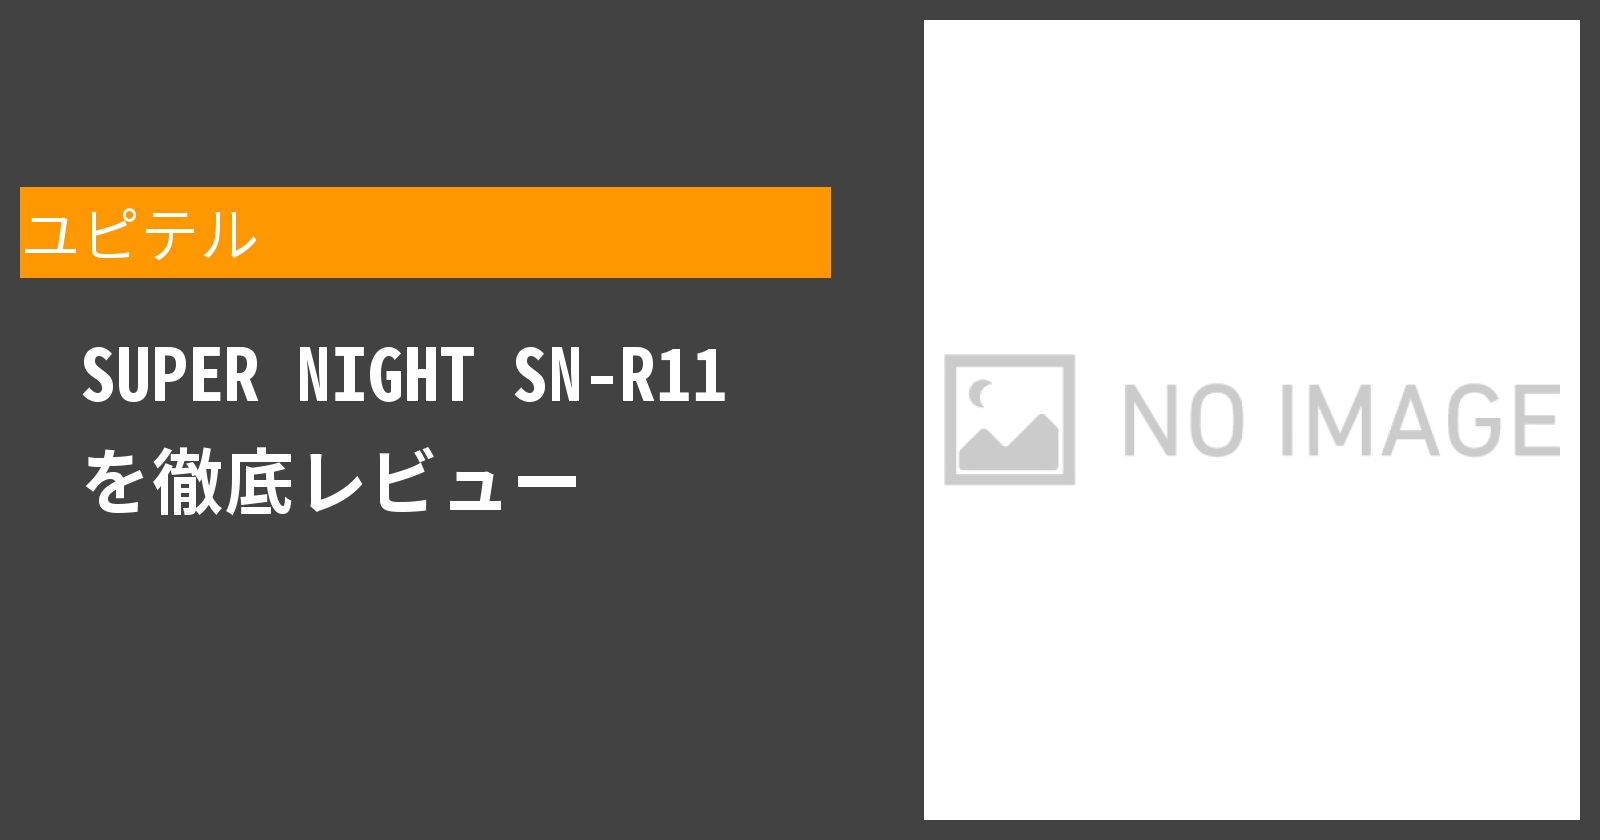 SUPER NIGHT SN-R11を徹底評価